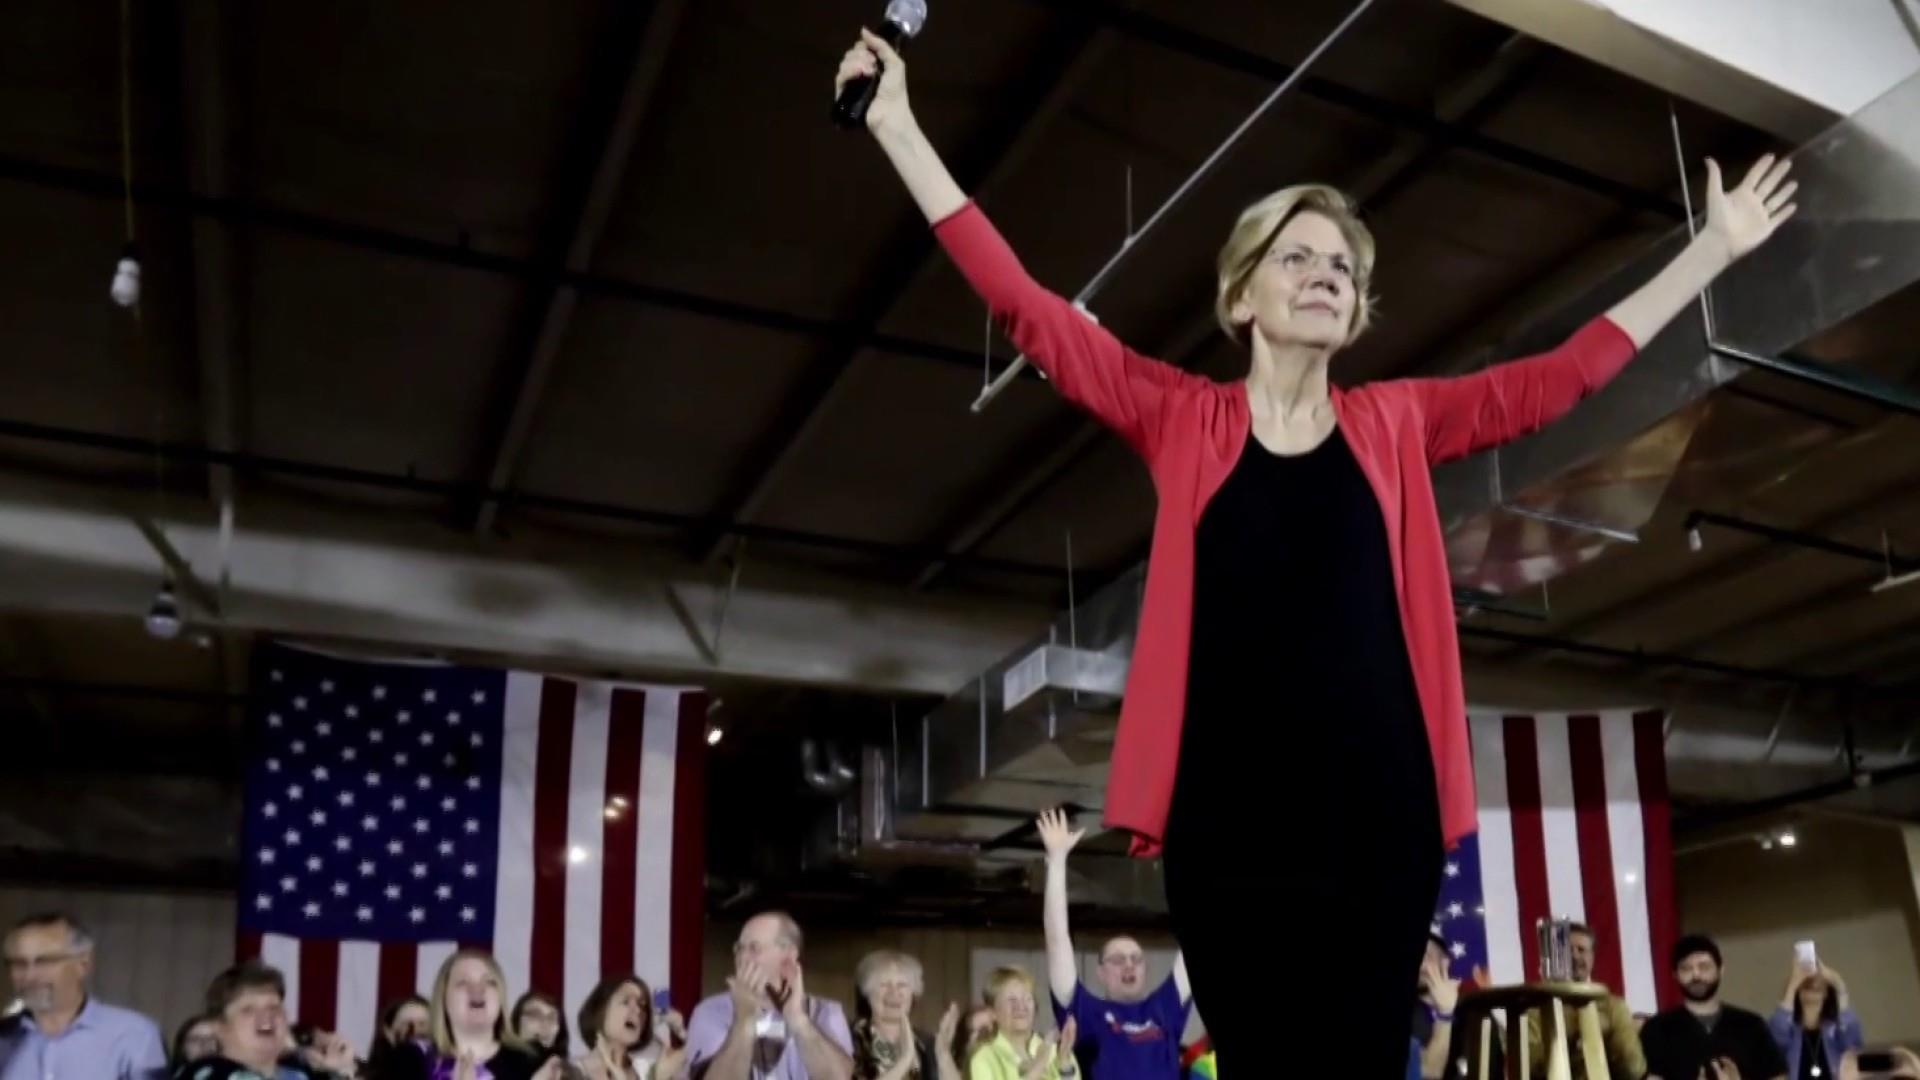 Elizabeth Warren is taking chances, and they seem to be paying off